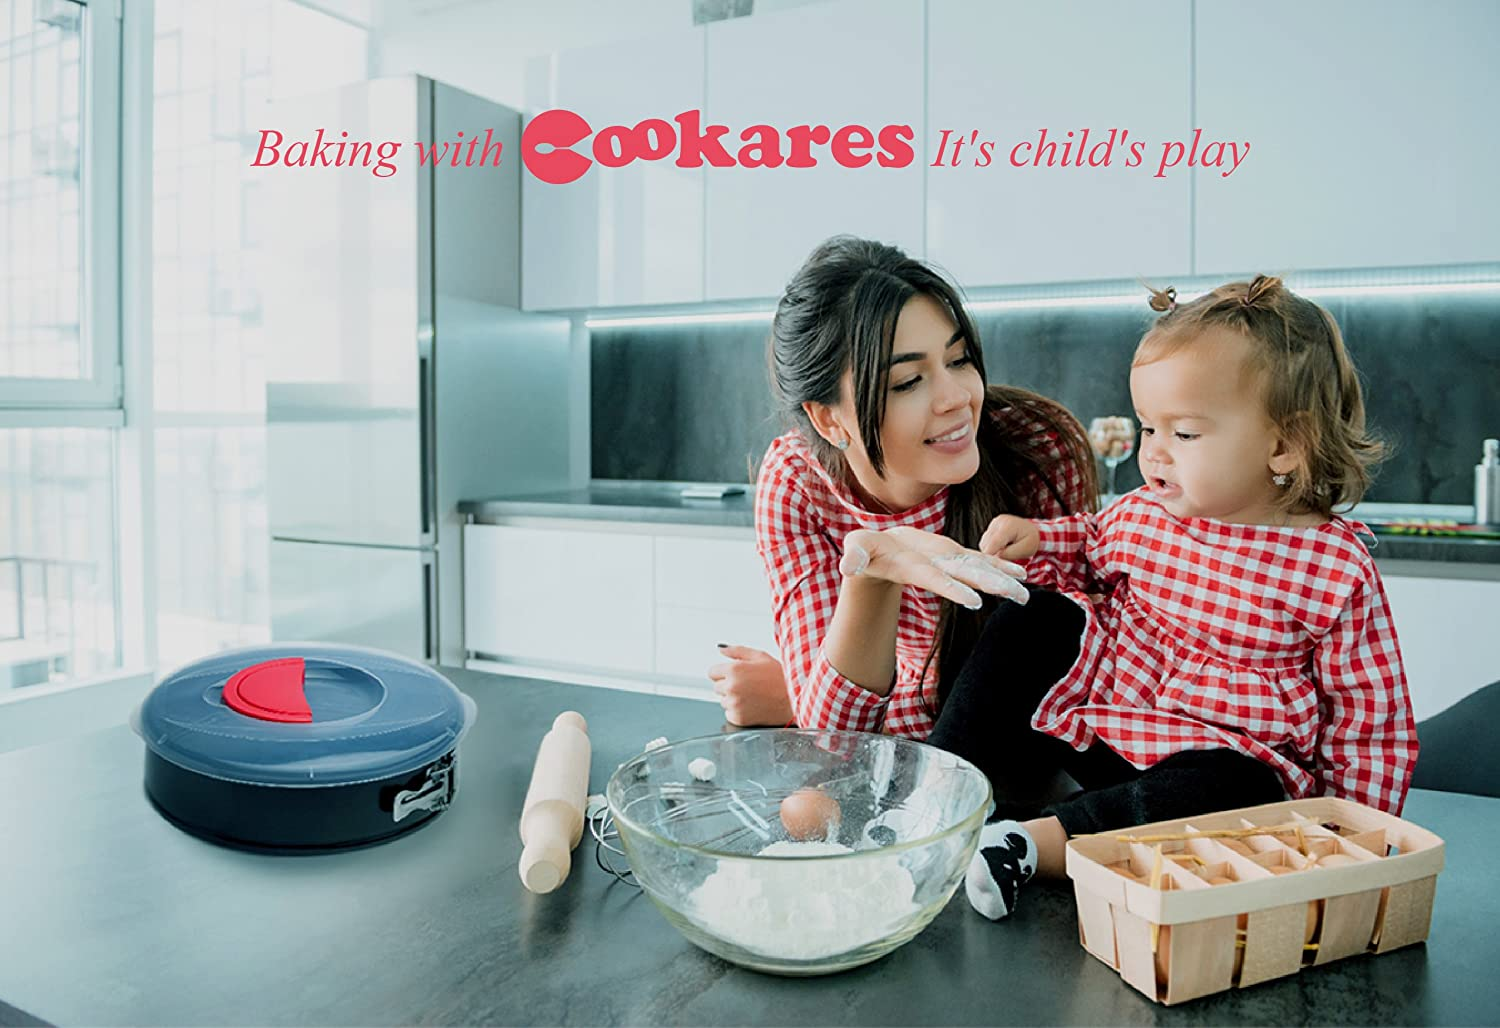 Free Bonuses Silicone Spatula /& Recipe eBook cookers Springform Pan 10 Inch NonStick 10 springform pan with lid Premium Cheesecake pan carrier with Cover Lid Quick Release Removable Bottom